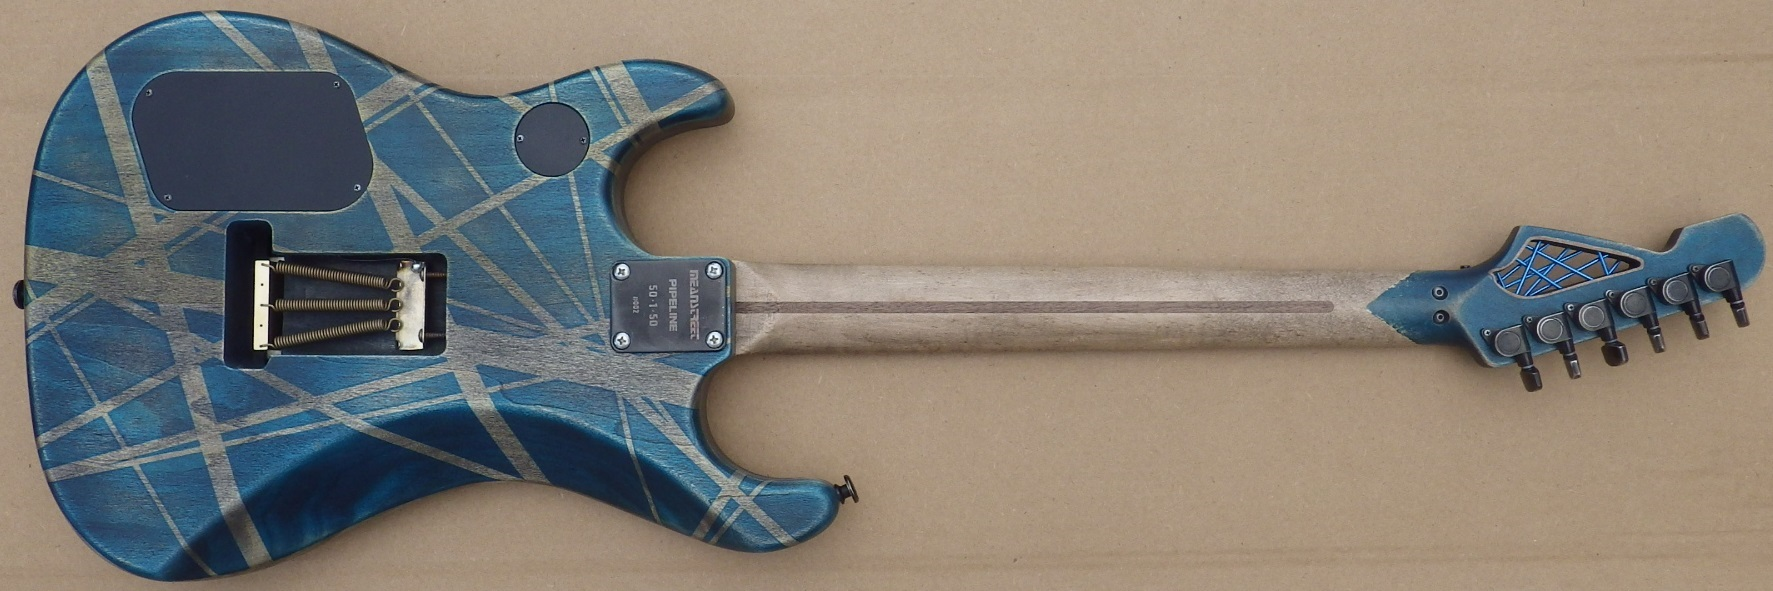 Mean Street Guitars Industrial 50 1 50 Pipeline Blue 002 pic 13.jpg